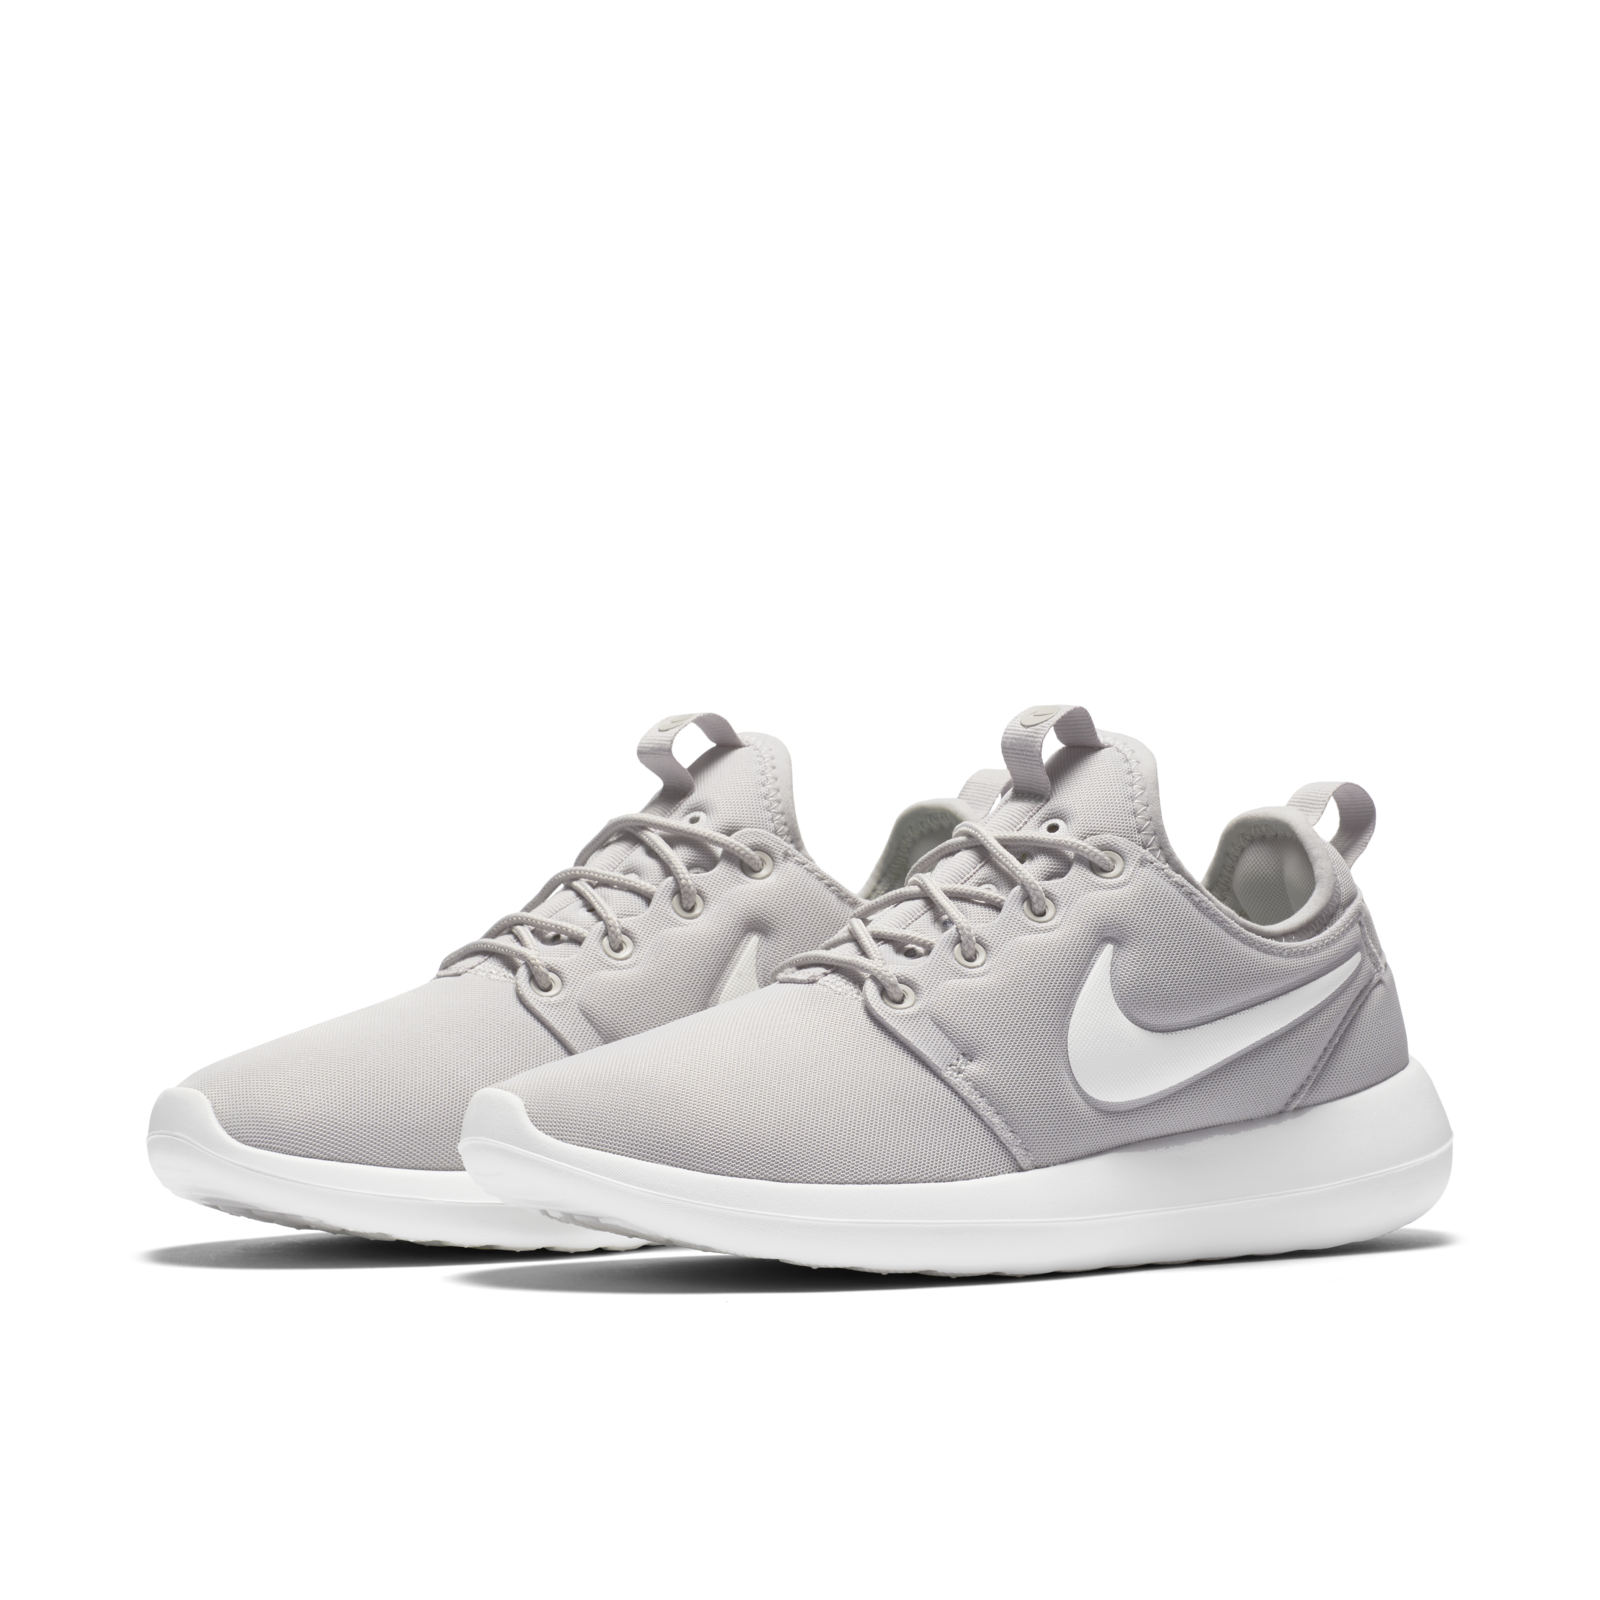 6d6f8fc3567 ... womens casual shoes black dark grey cd749 c2ede  where to buy nike  roshe 2 4f722 62792